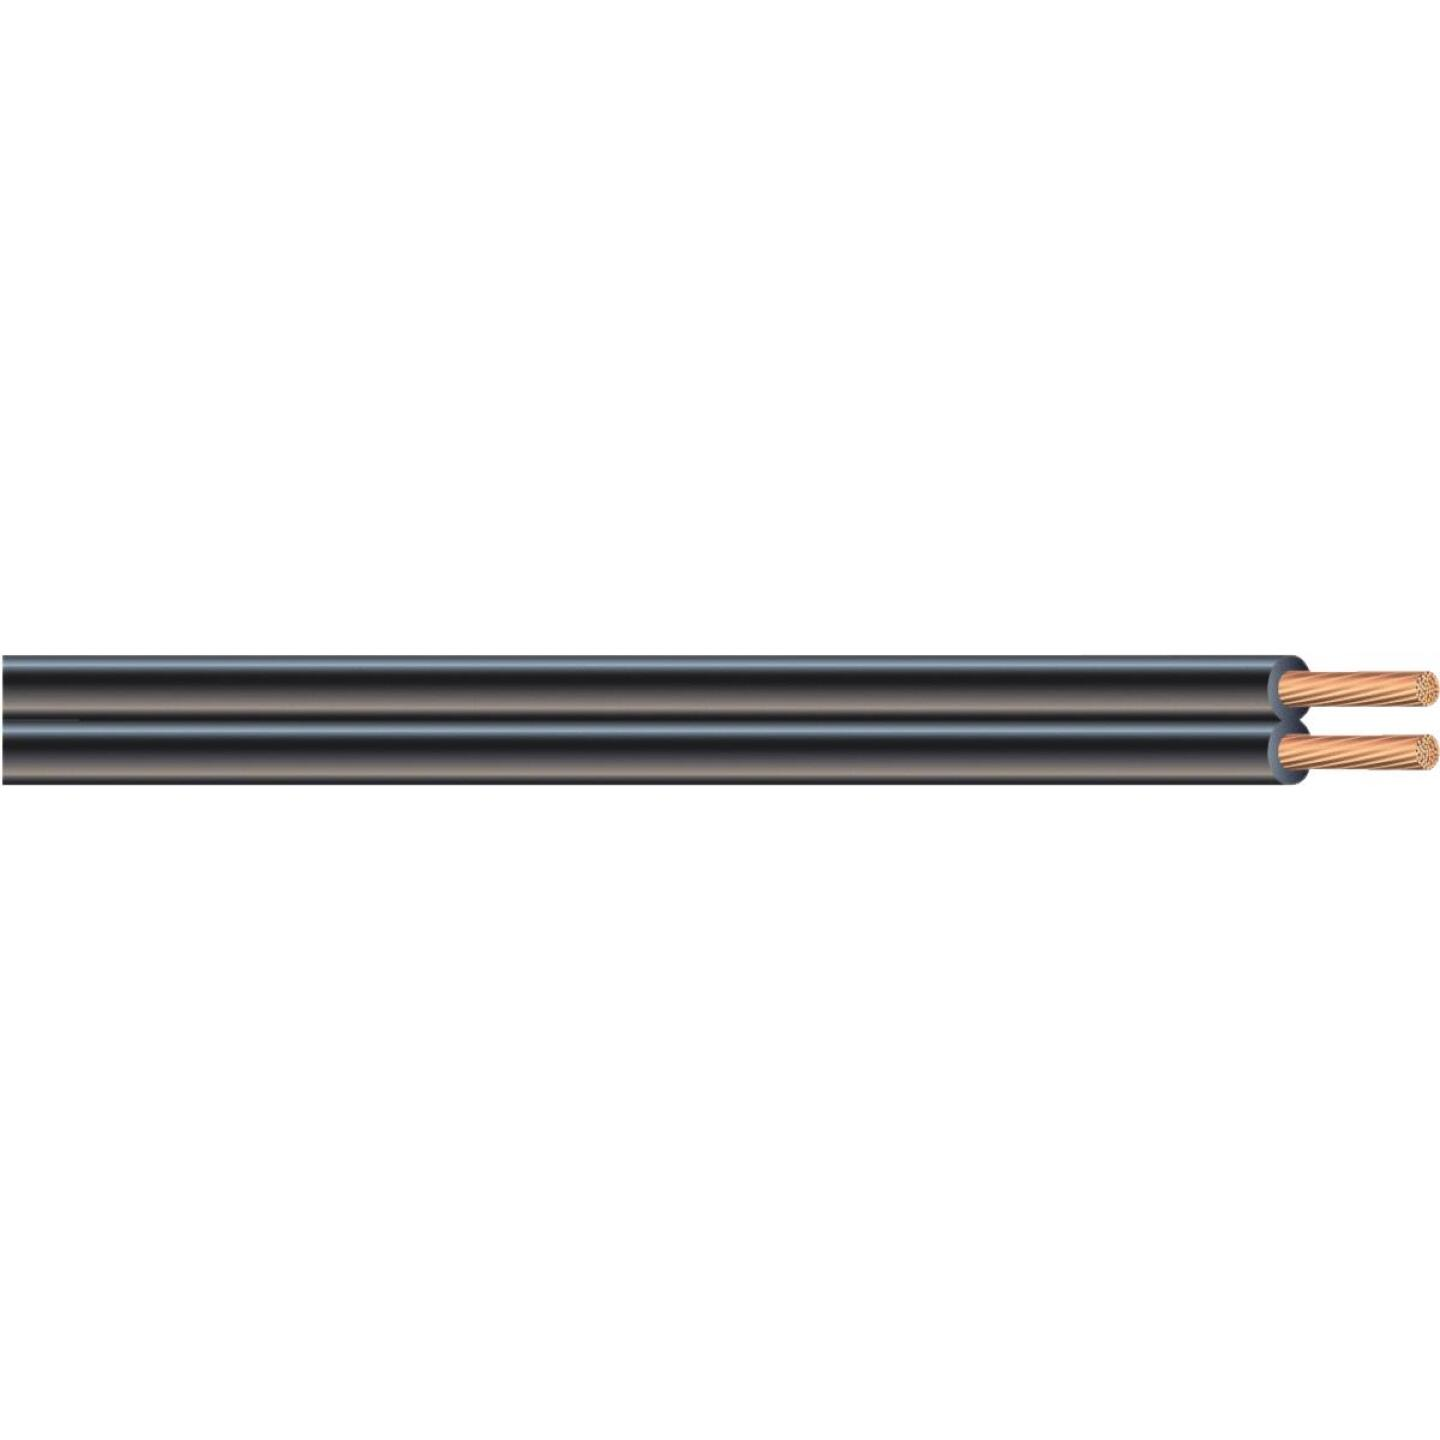 Southwire 100 Ft. 16-2 Stranded Low Voltage Cable Image 1